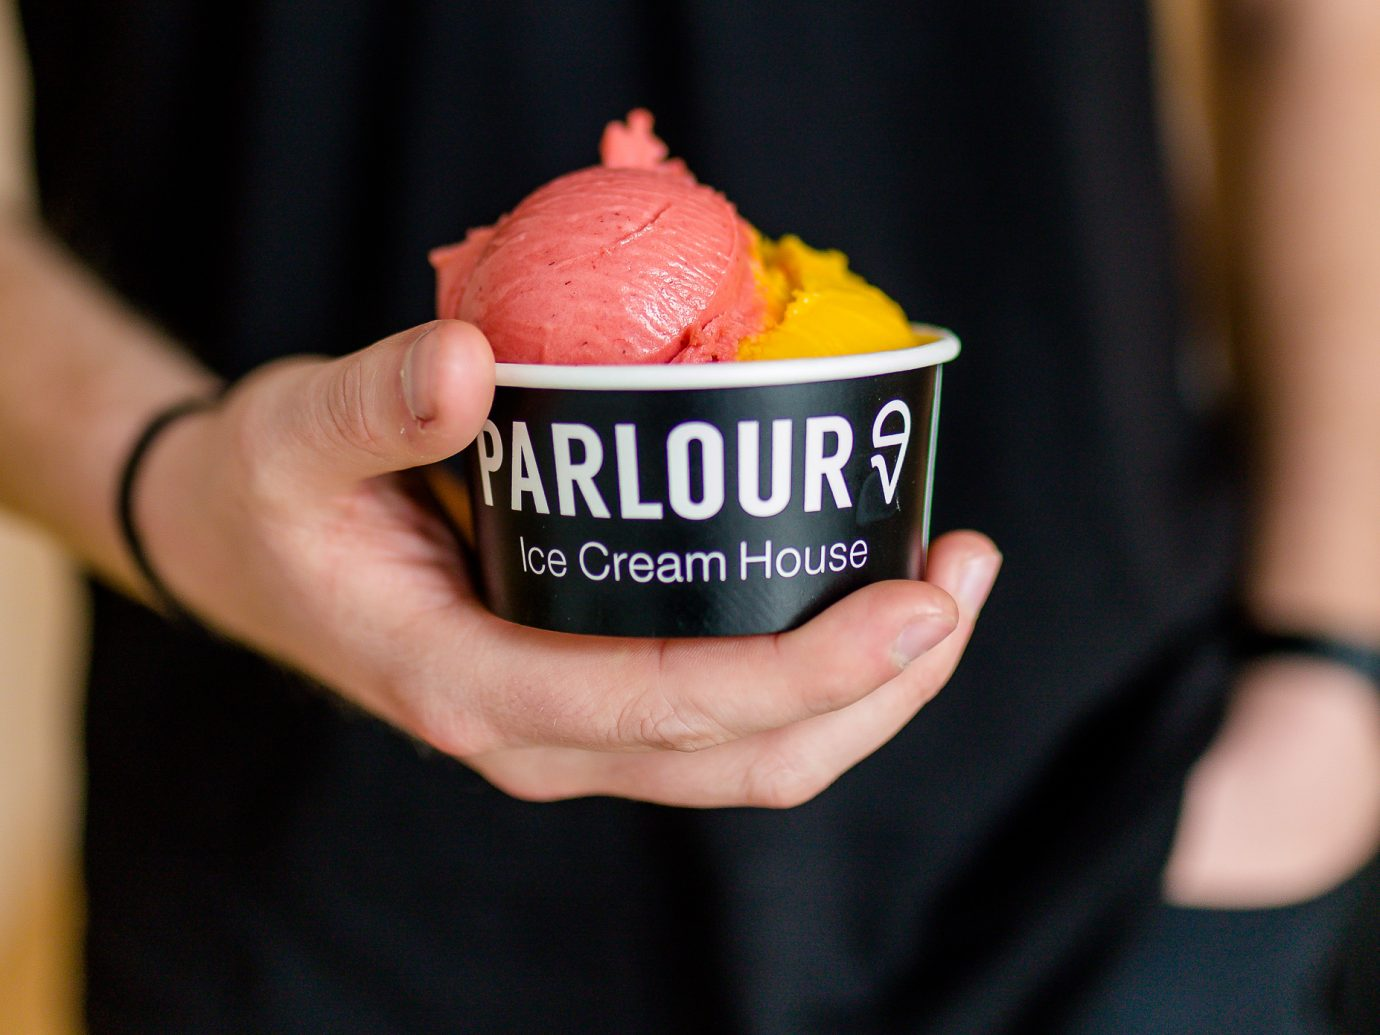 Parlour Ice Cream House